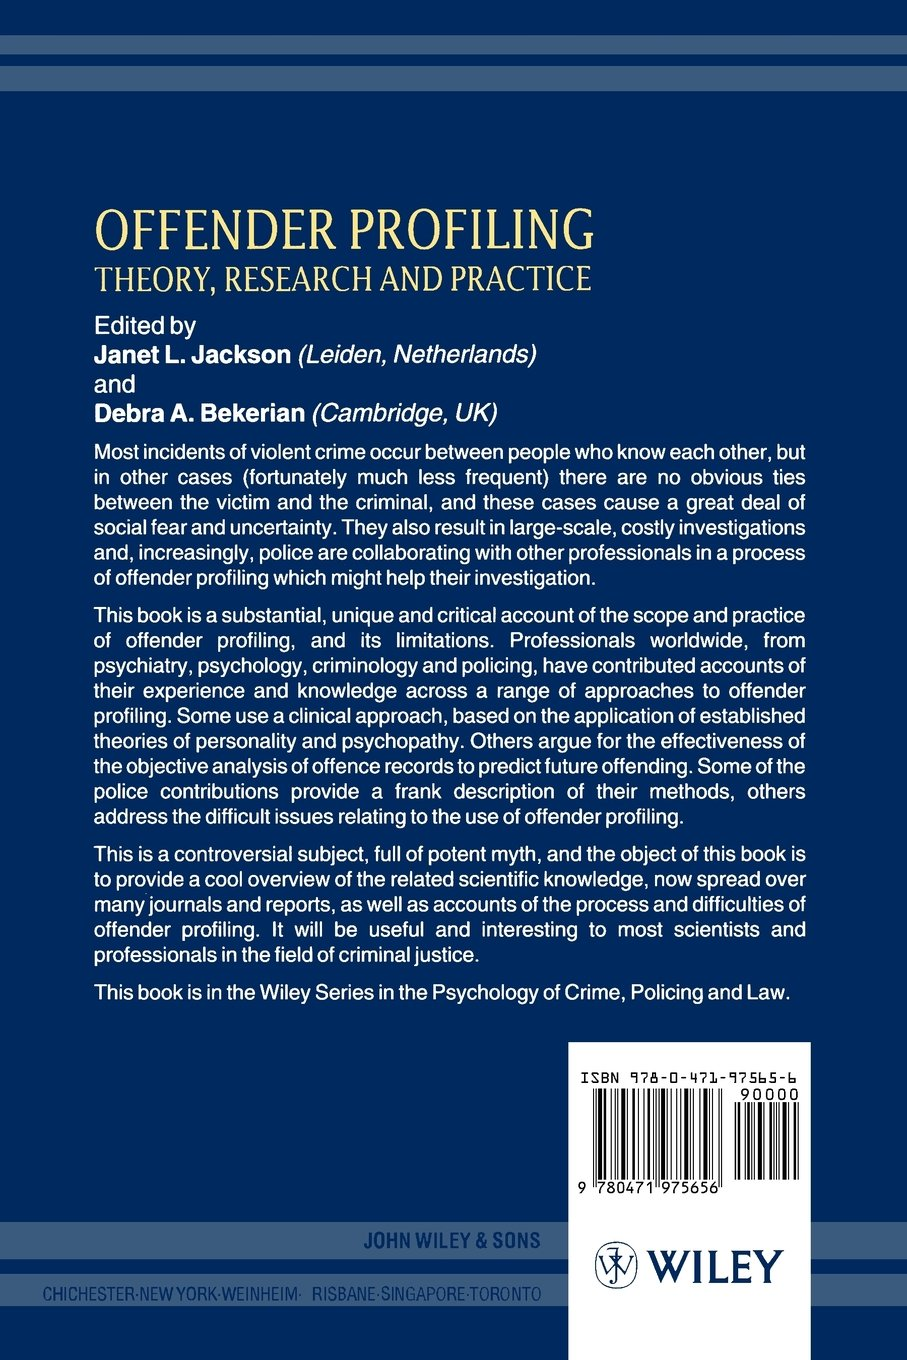 offender profiling theory research and practice wiley series in  offender profiling theory research and practice wiley series in psychology of crime policing and law amazon co uk janet l jackson